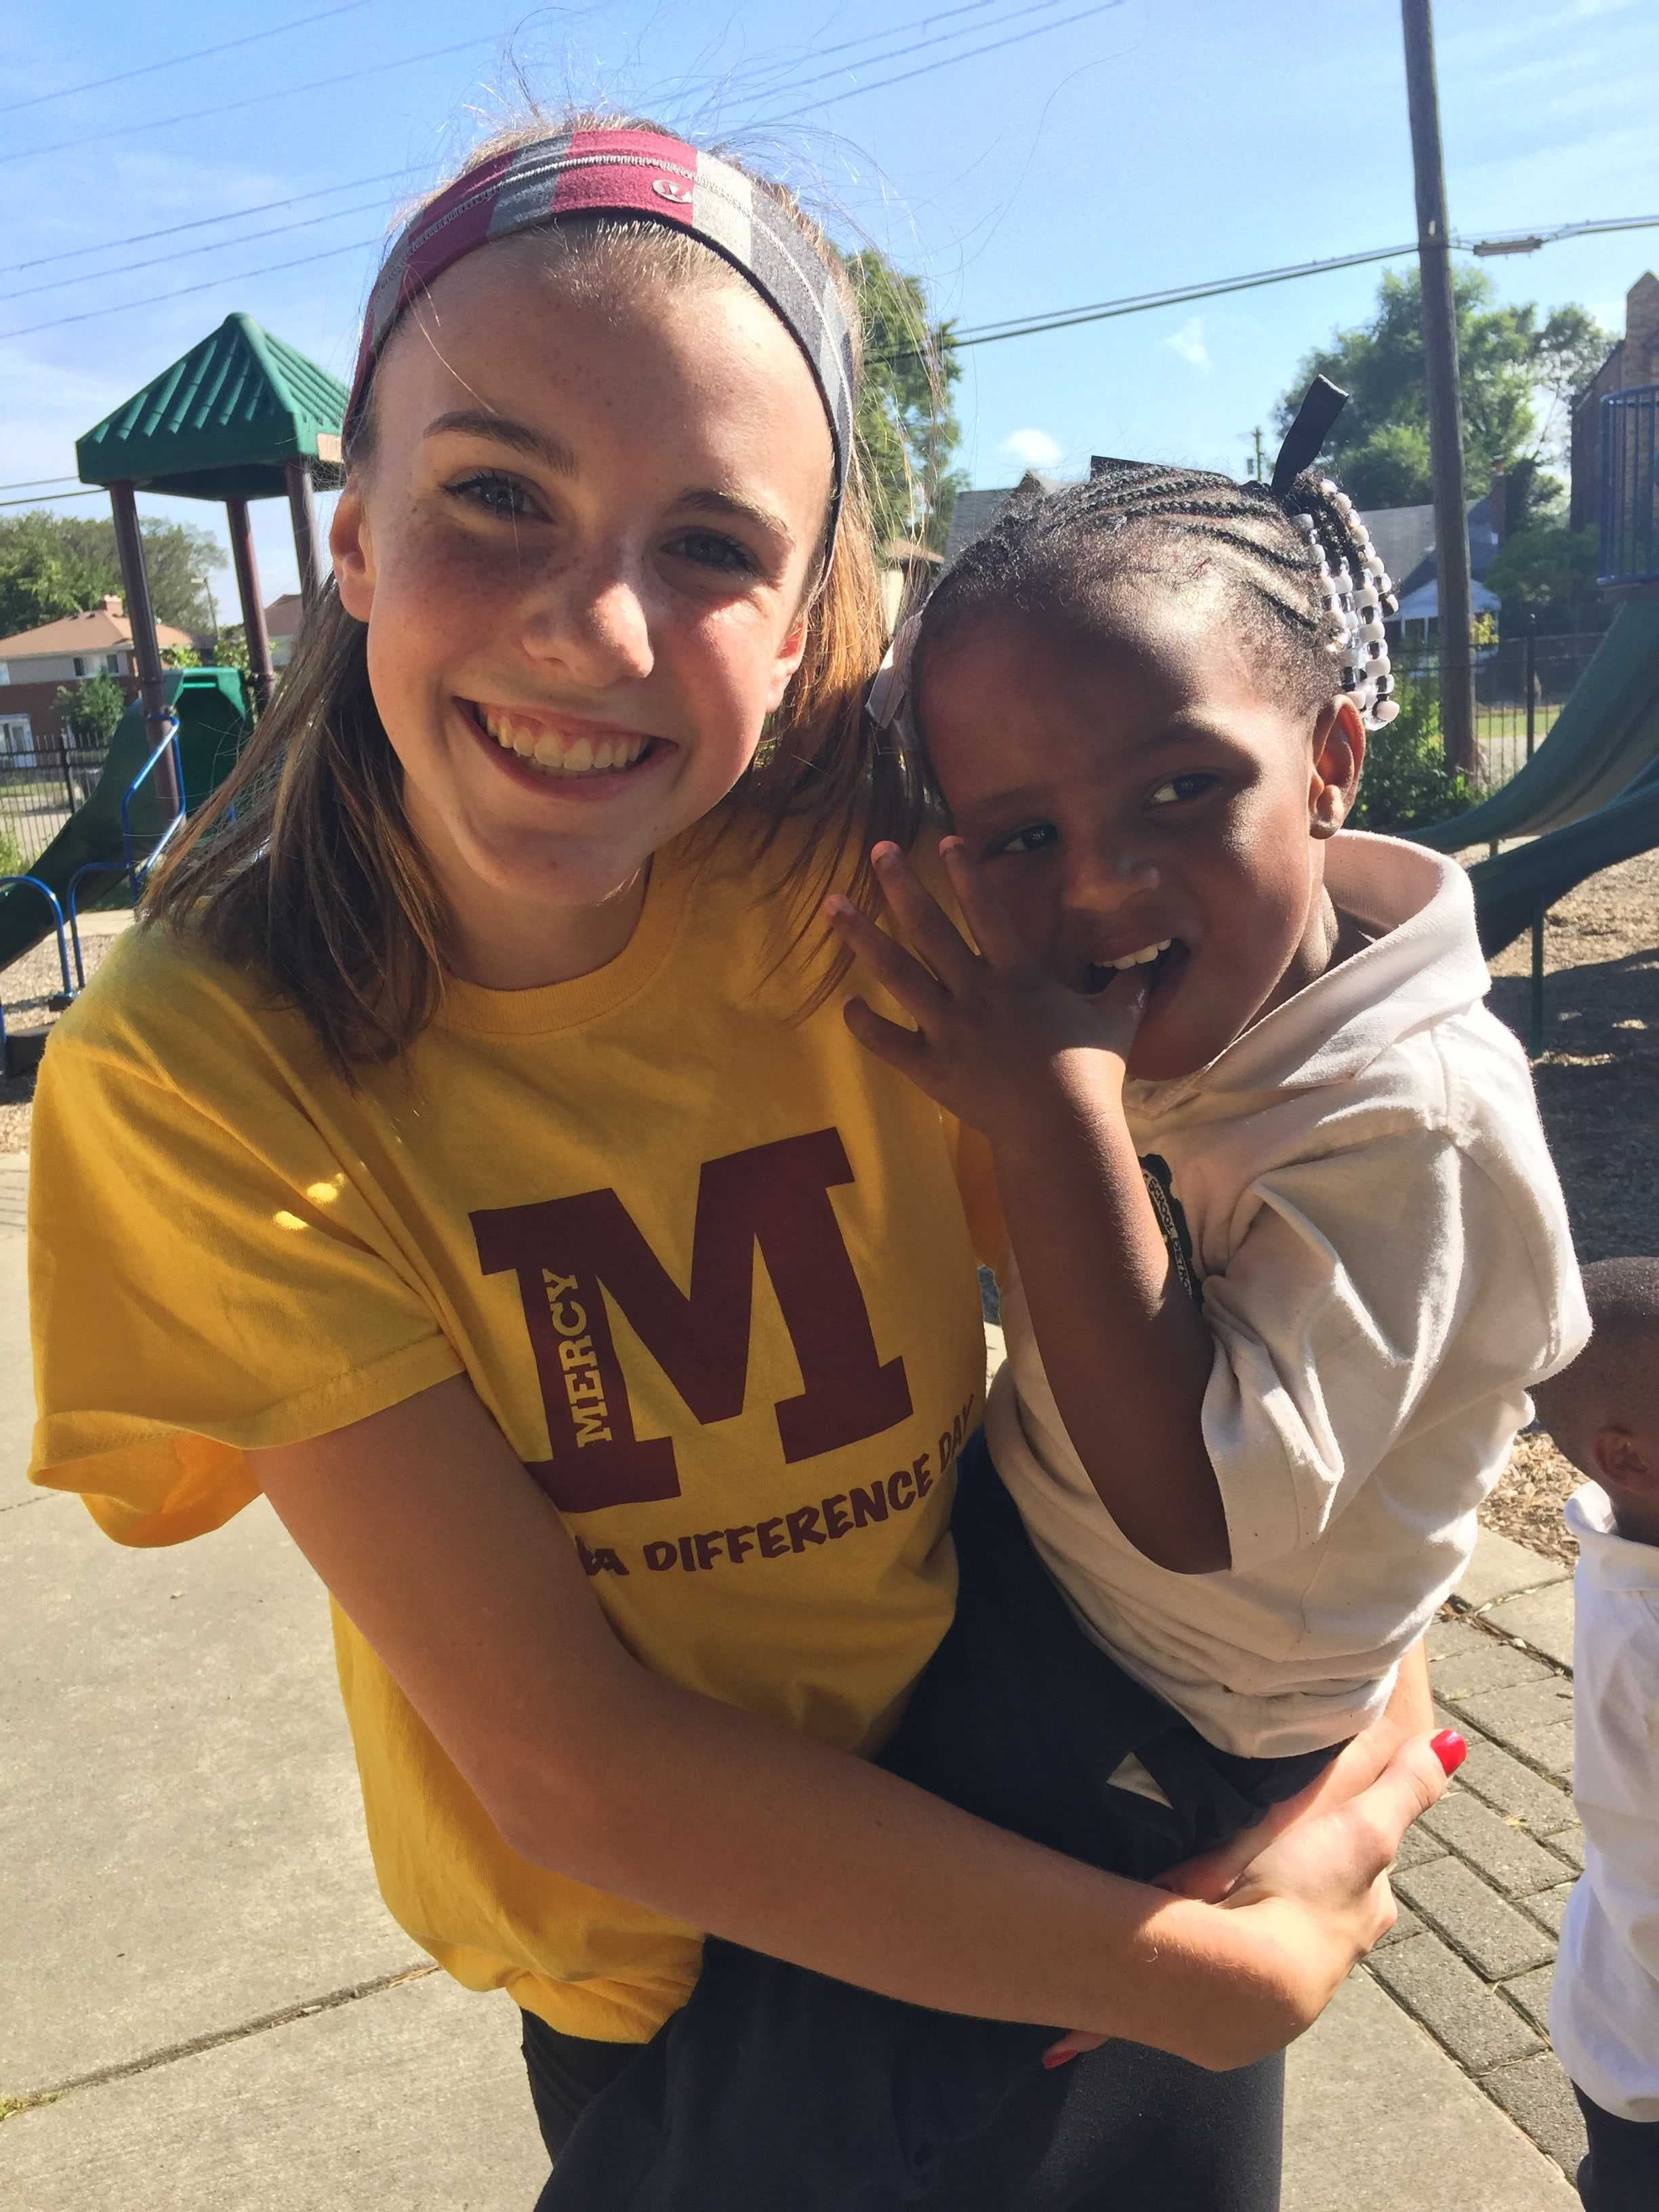 Mercy sophomore Maggie Belevie holds the Gesu student she spent her day with. According to Delevie, she and the young girl played tag and climbed the jungle gym. (Photo credit: Allia McDowell)